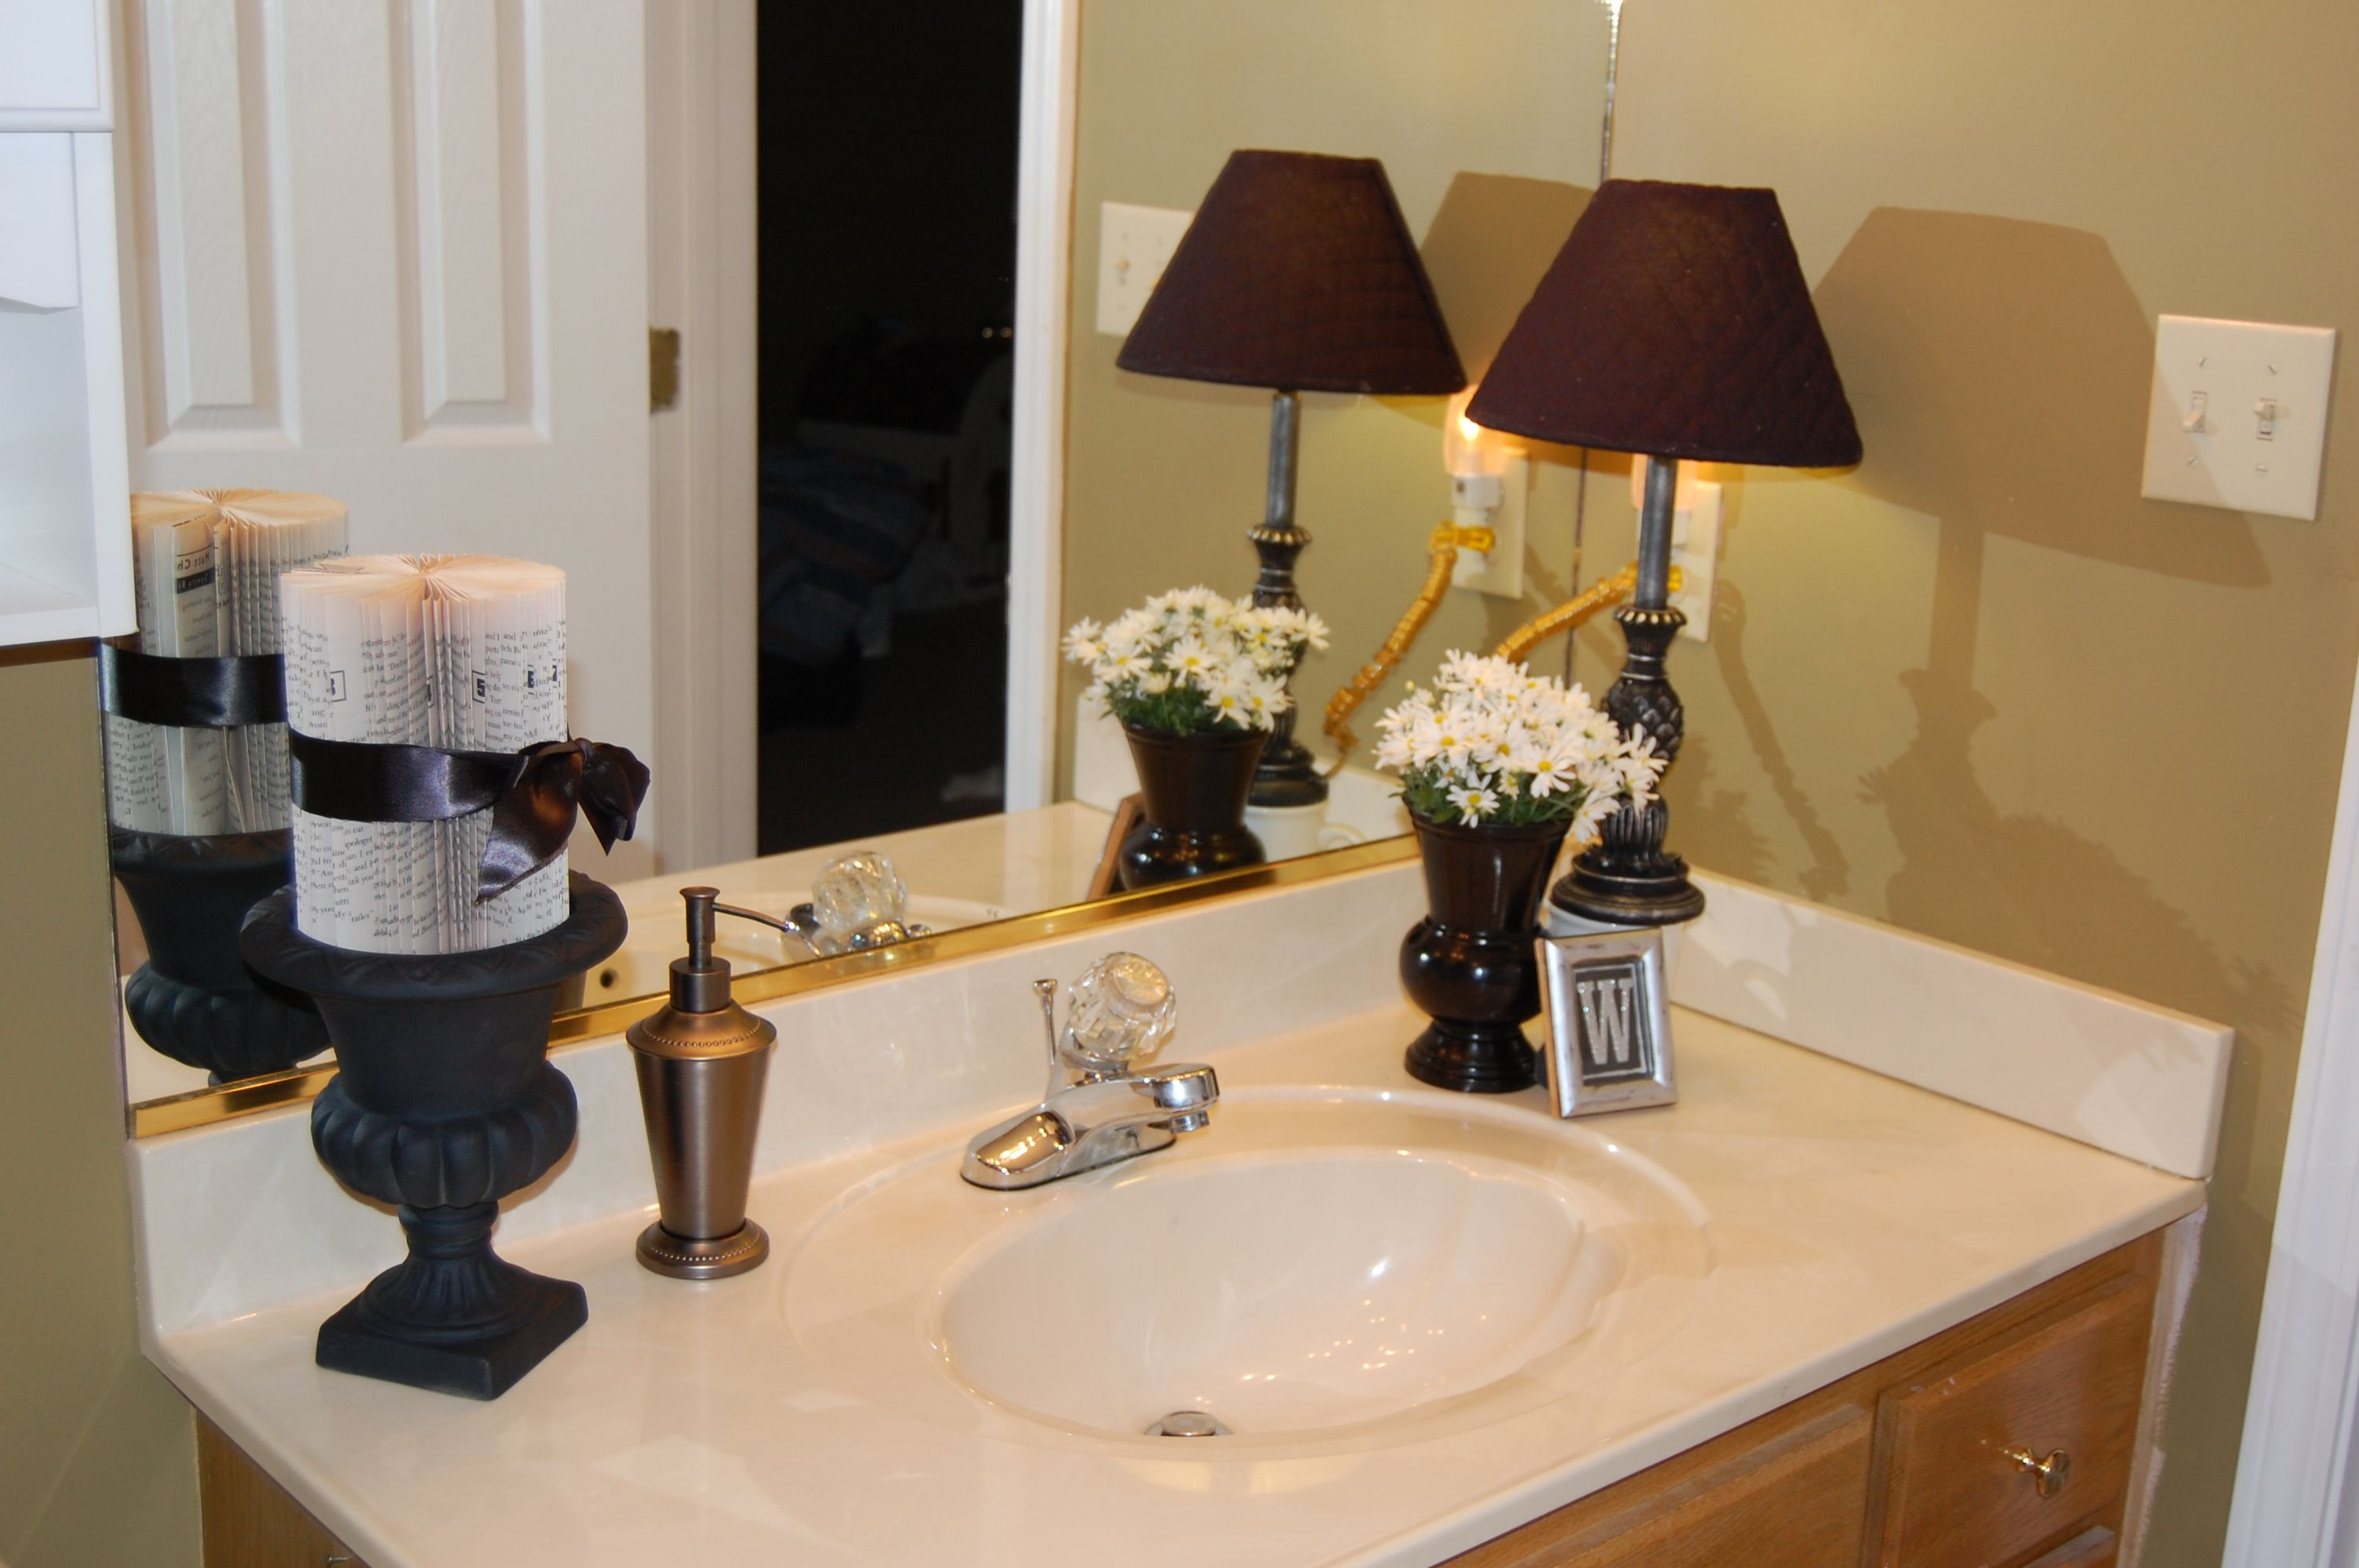 Bathroom Counter Decor Like The Wall Color Large Mirror And